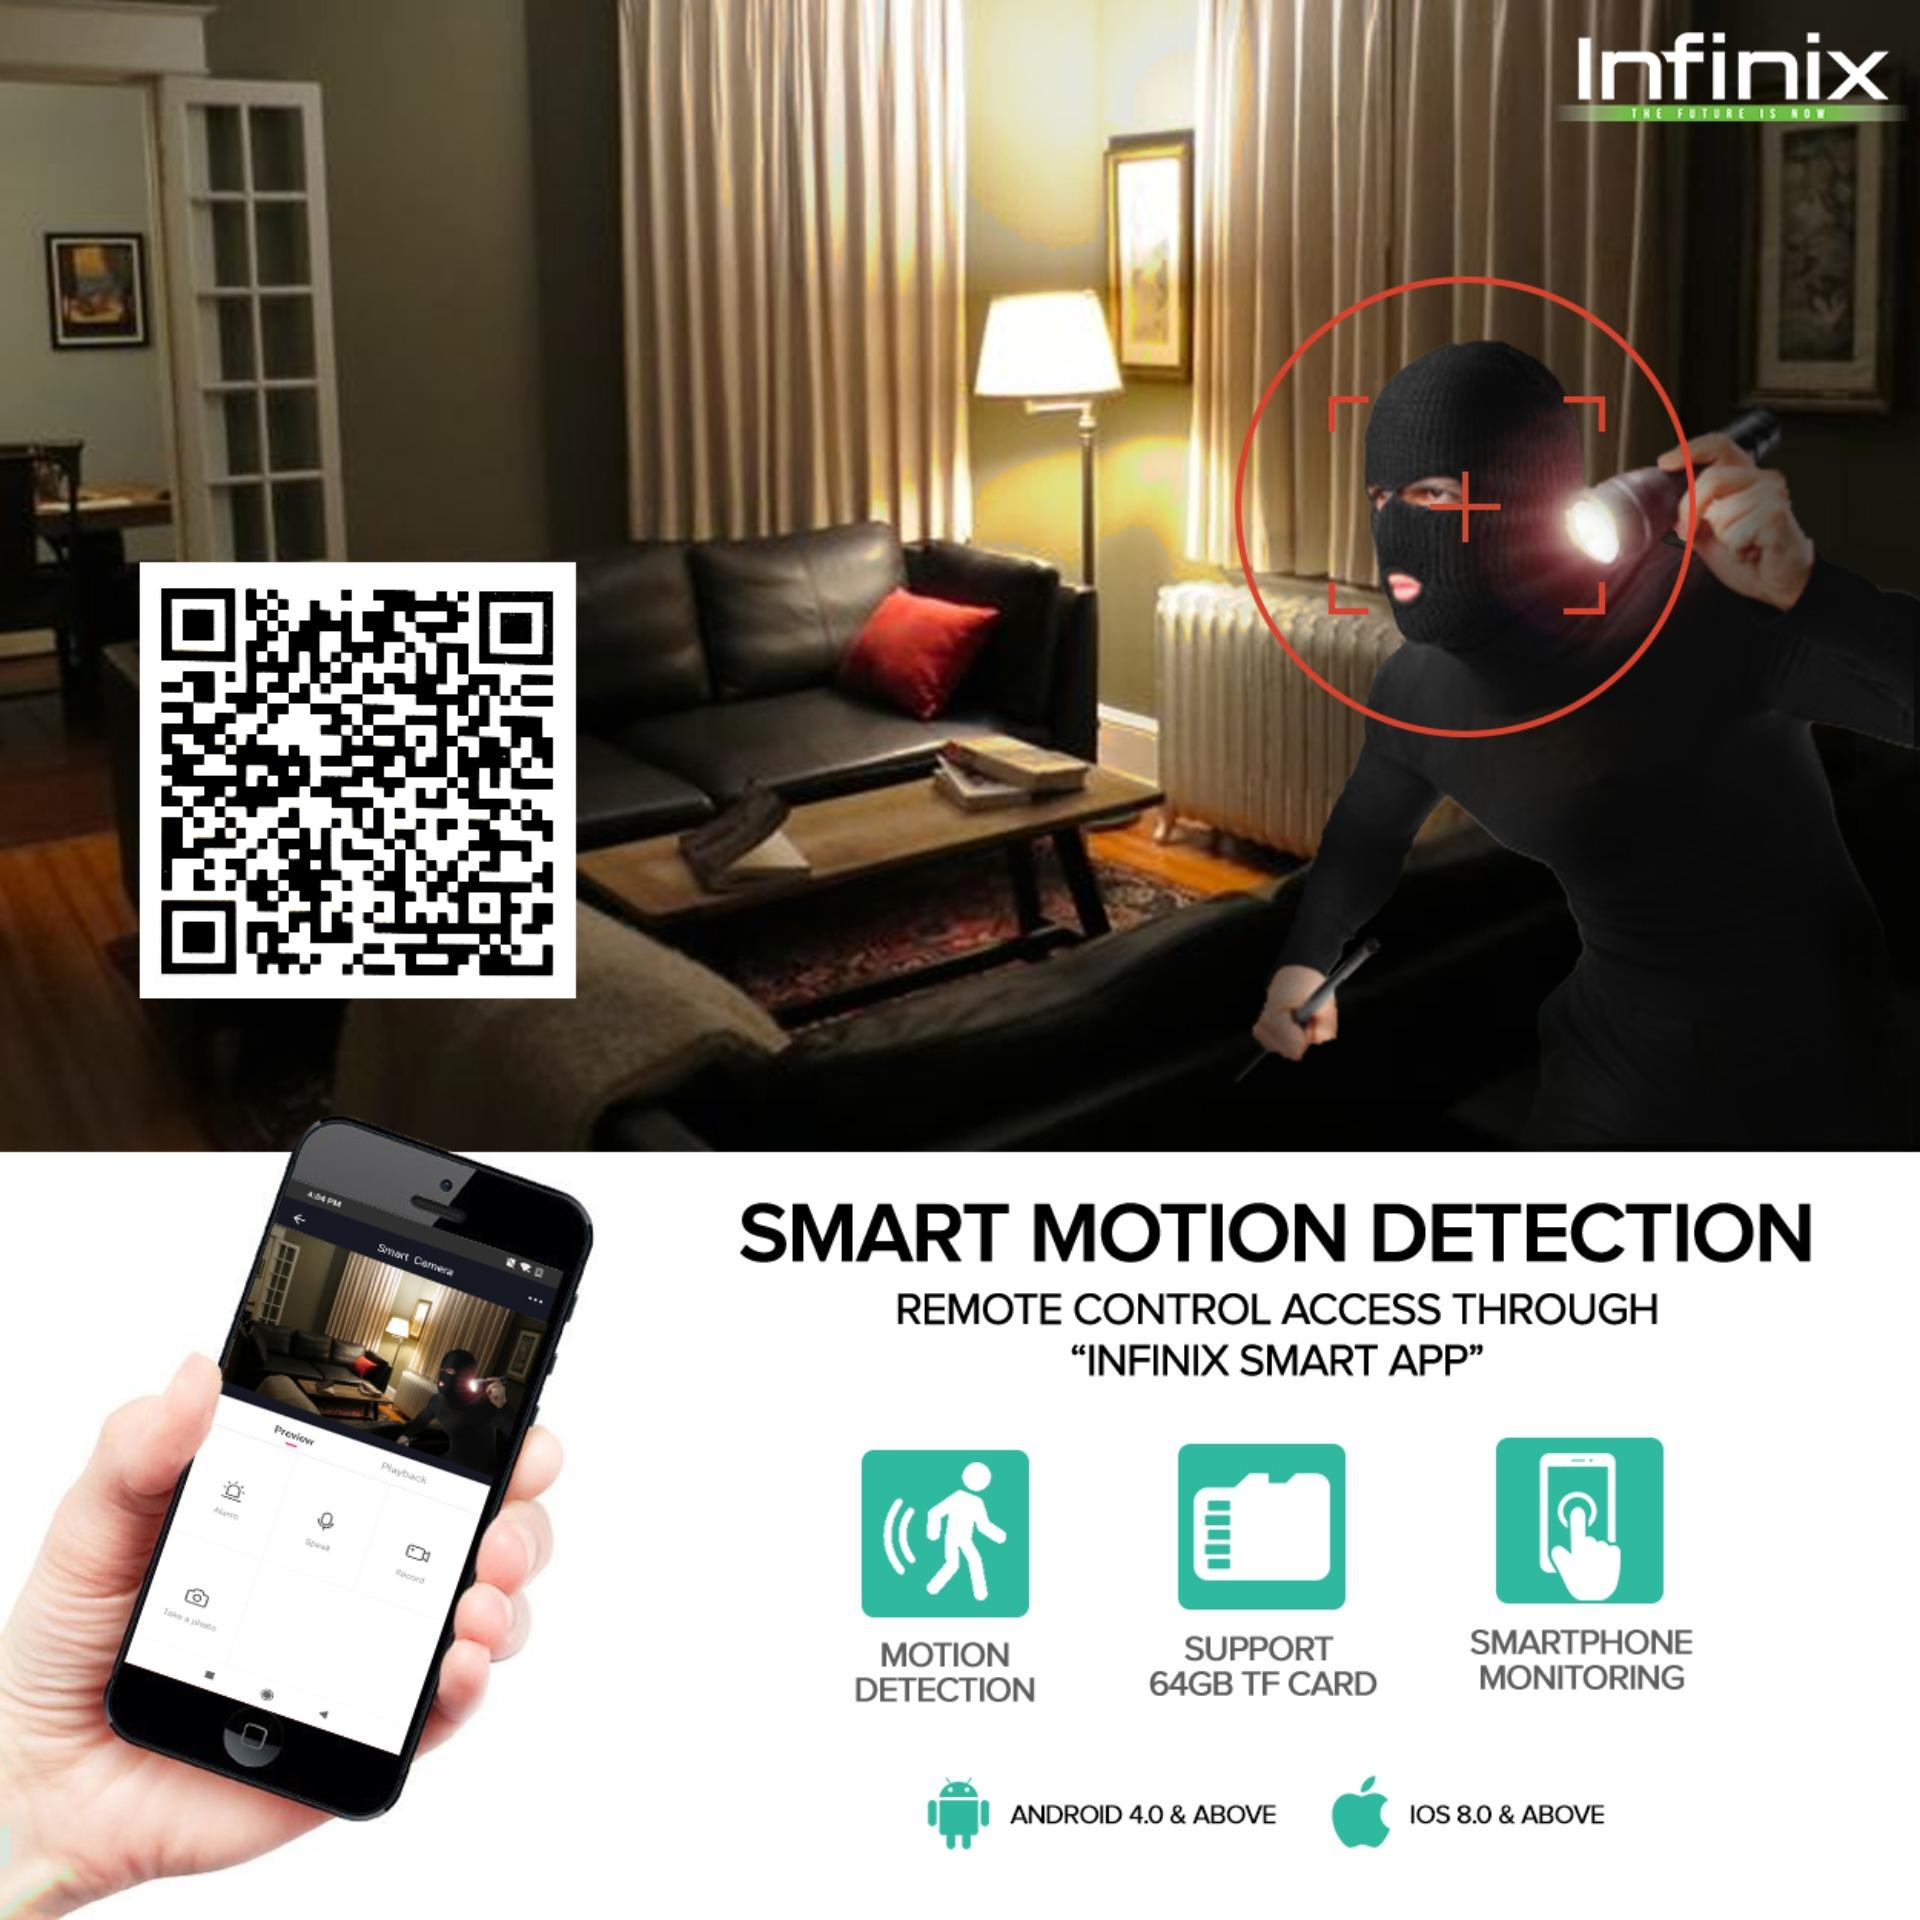 Infinix XCA01 720p WiFi IP with Motion Detection Smart Camera (White)